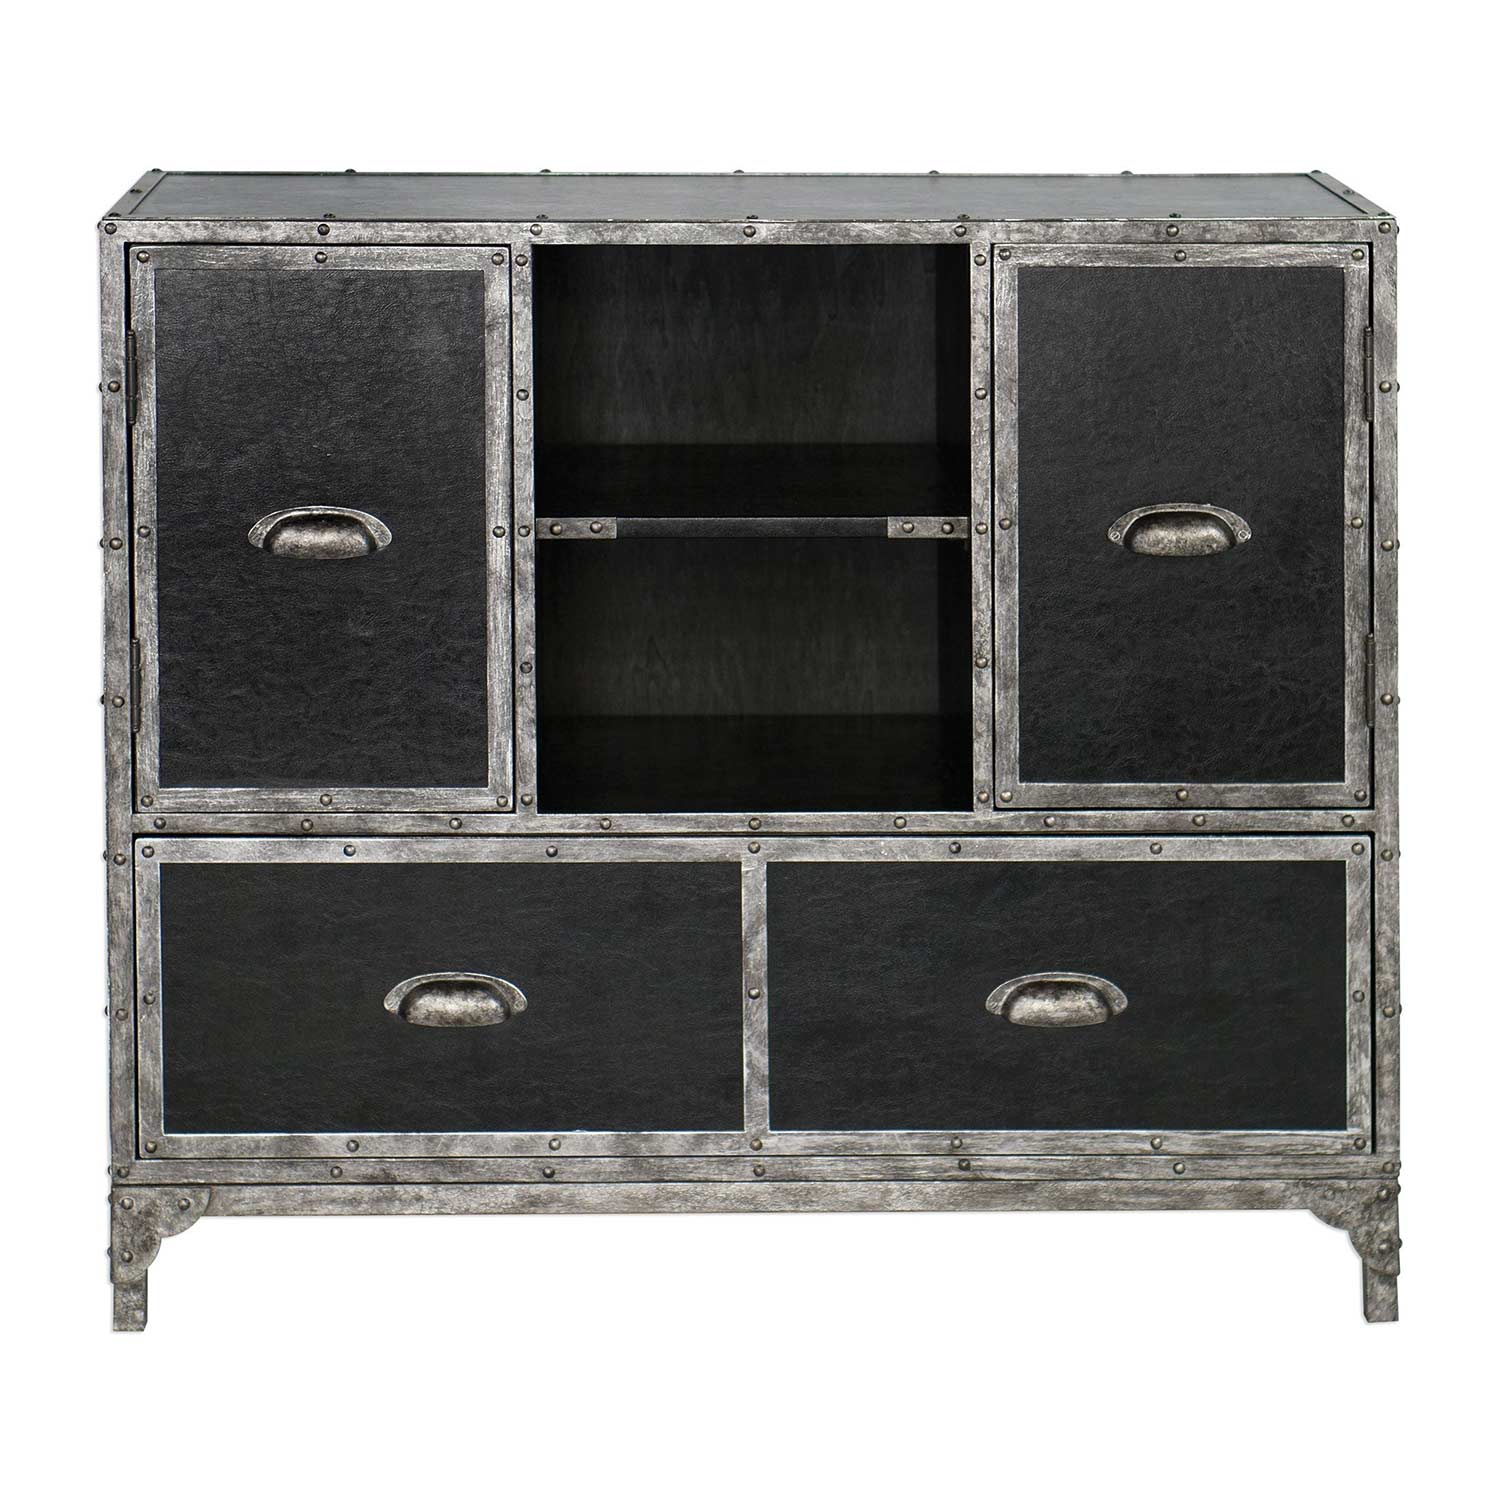 Uttermost Shawn Accent Chest - Black Leather